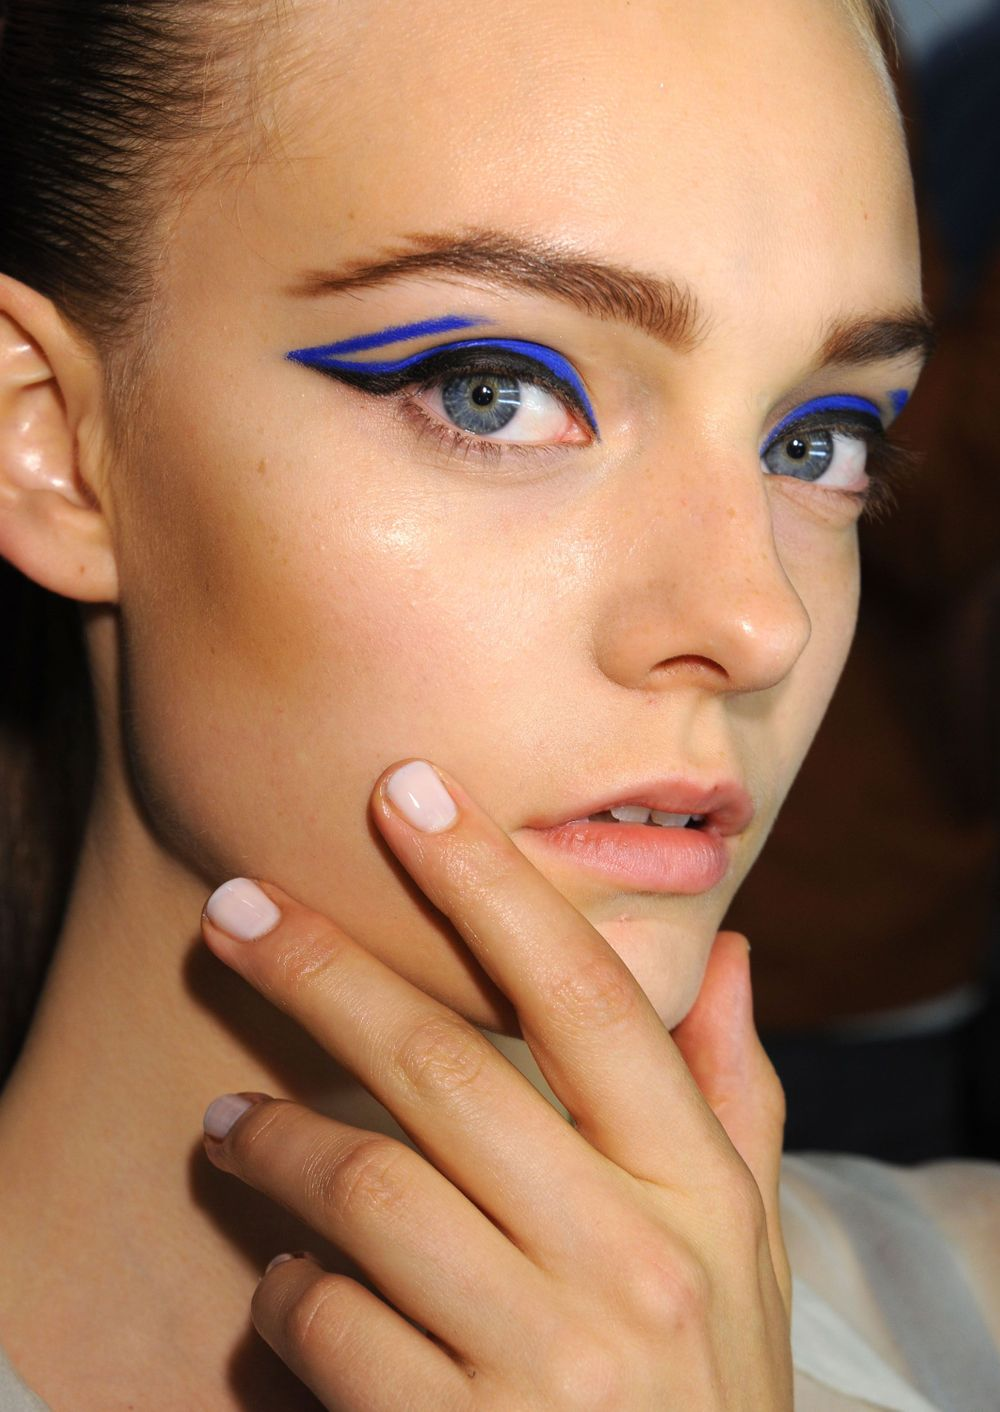 <p>At the Monique Lhuillier show, nail tech Wanda Ruiz and the <strong>CND</strong> team used Cream Washed topped with Super Shiney Top Coat for a glossy finish. The toes were reminiscent of a cloudy night sky with custom-blended blue.</p> <p><em>Photo courtesy of Creative Nail Design (CND)</em></p>